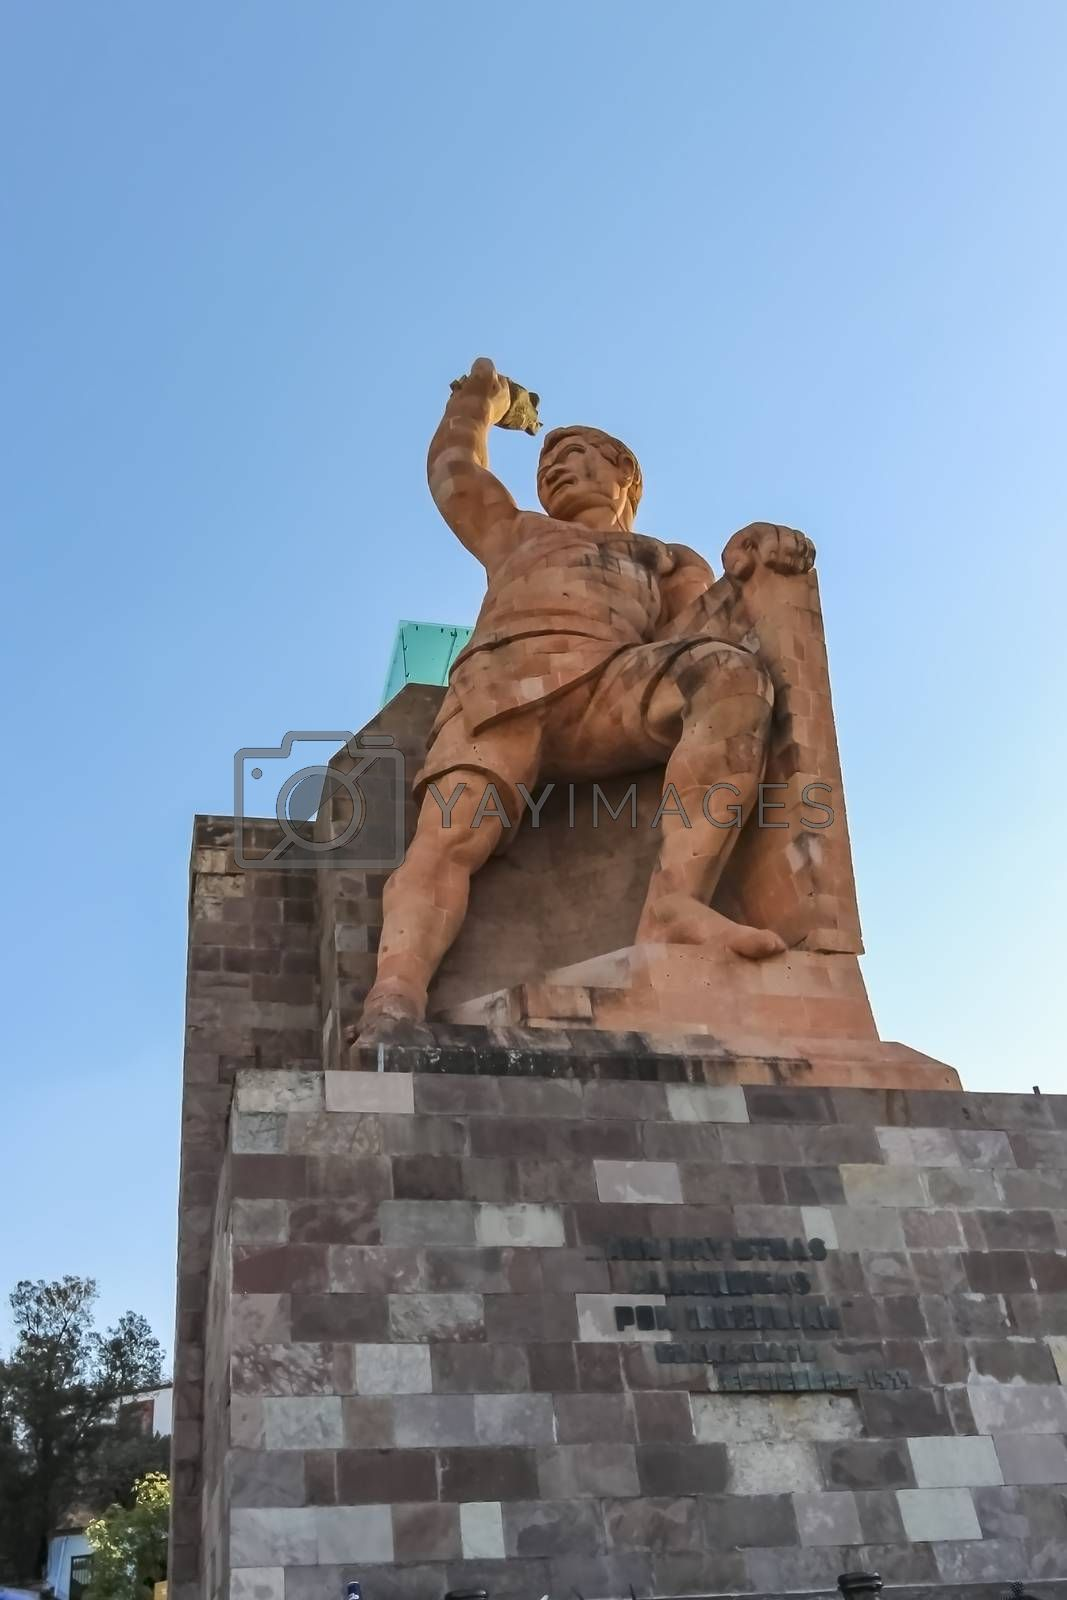 Monument El Pipila in Guanajuato, Mexico, a stone monument statue depicts a famous miner Juan Jose Martinez, a hero of the War of Independence